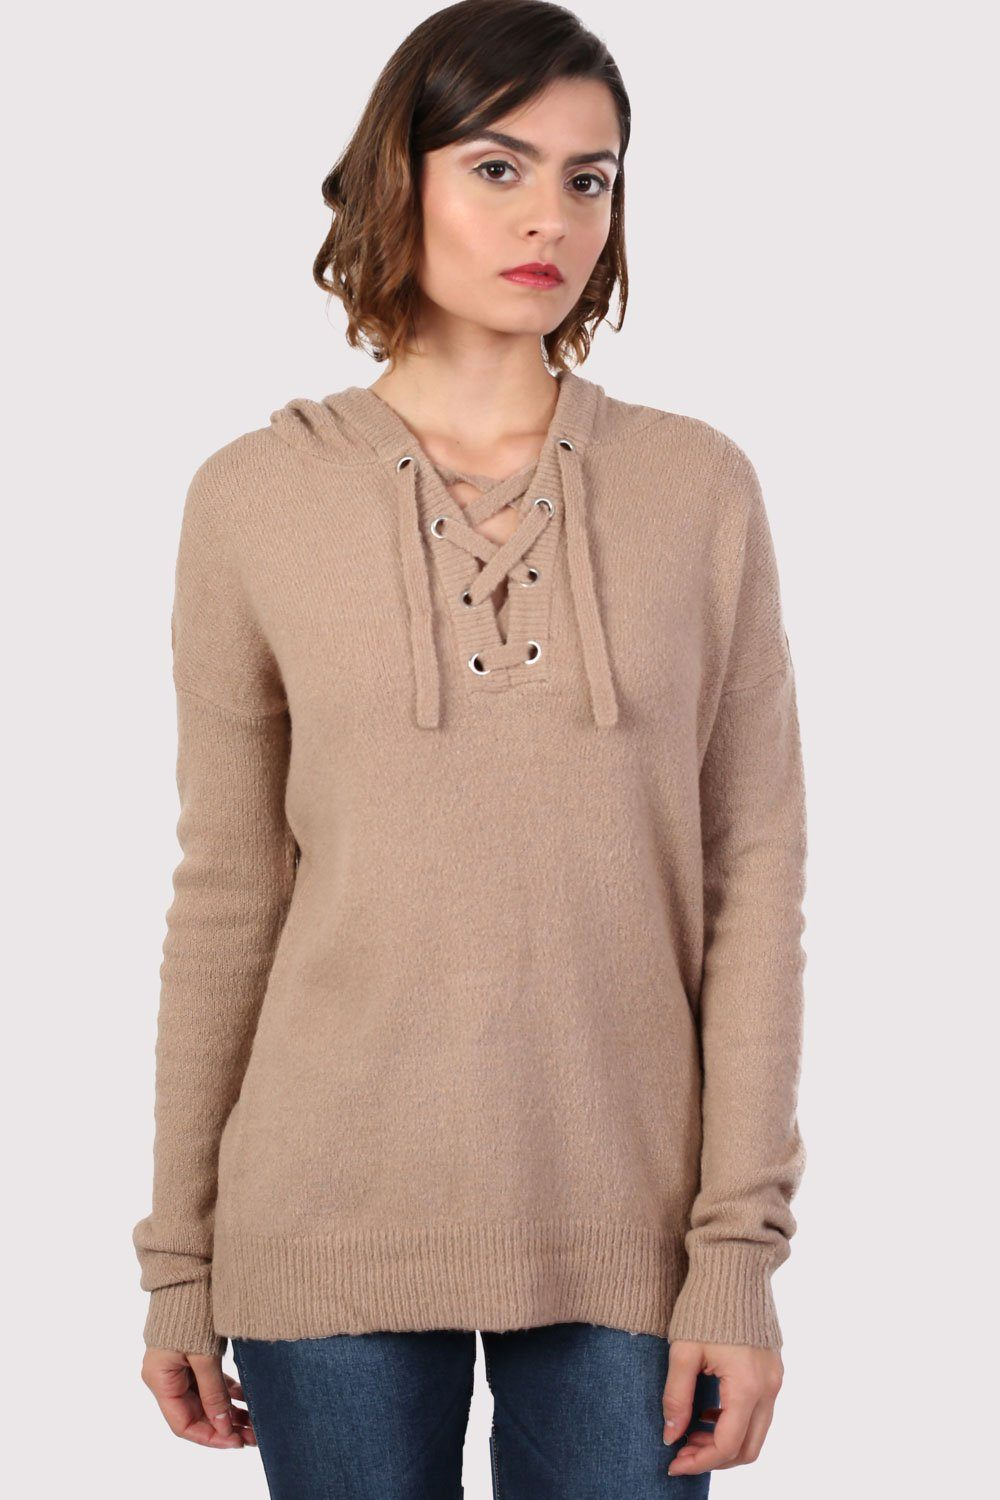 Lace Up Front Hooded Jumper in Camel Brown 1